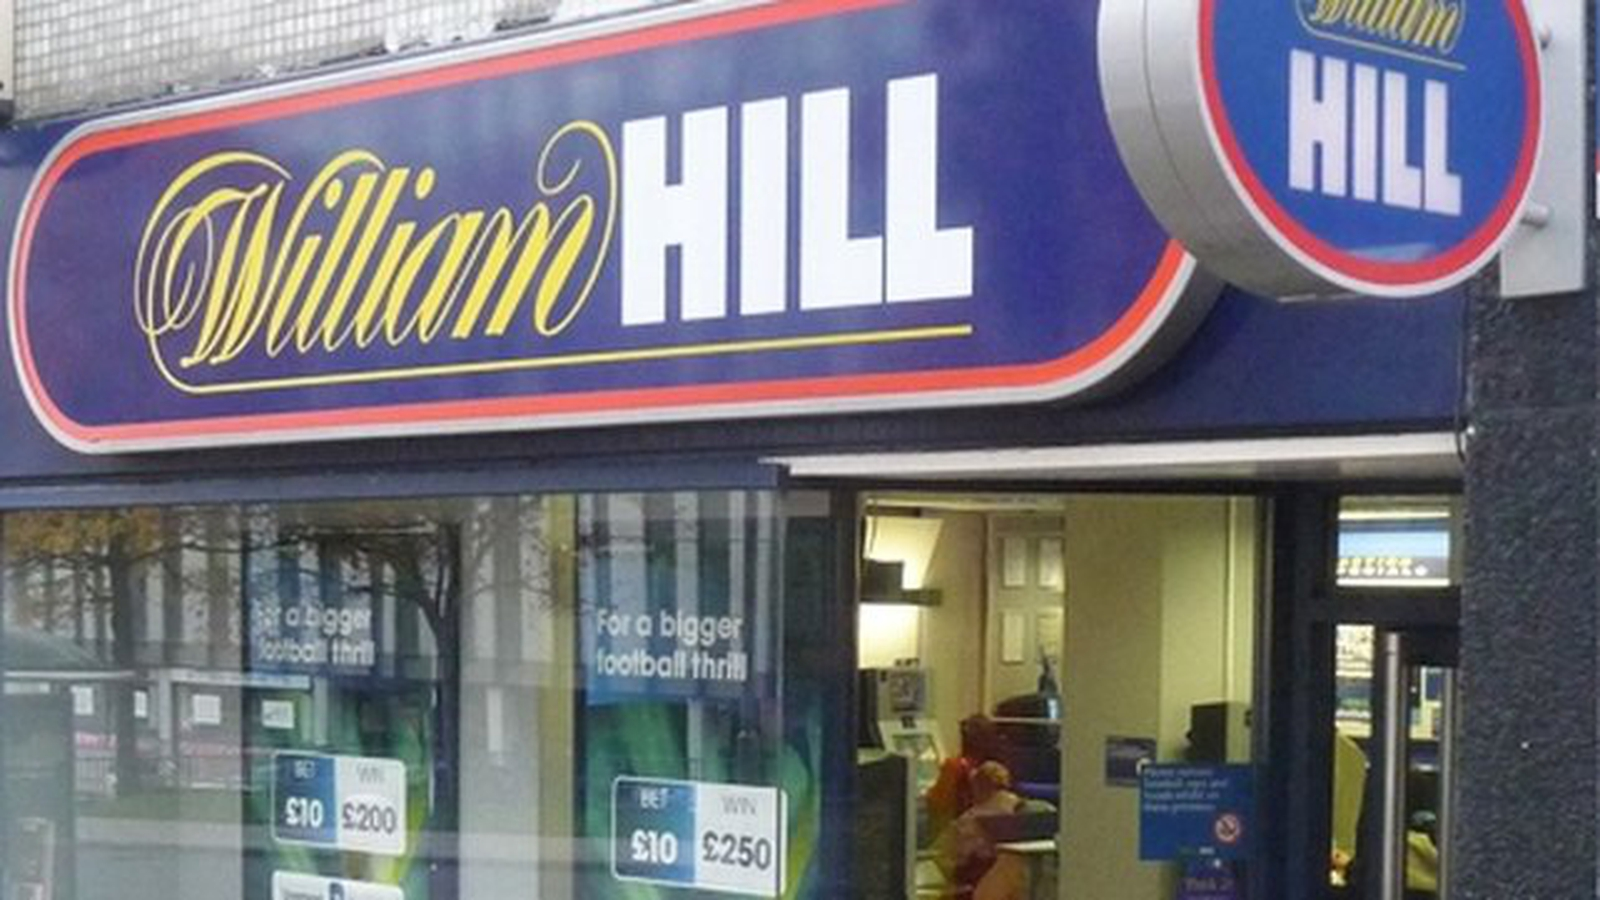 William Hill plans to close 700 betting shops in UK